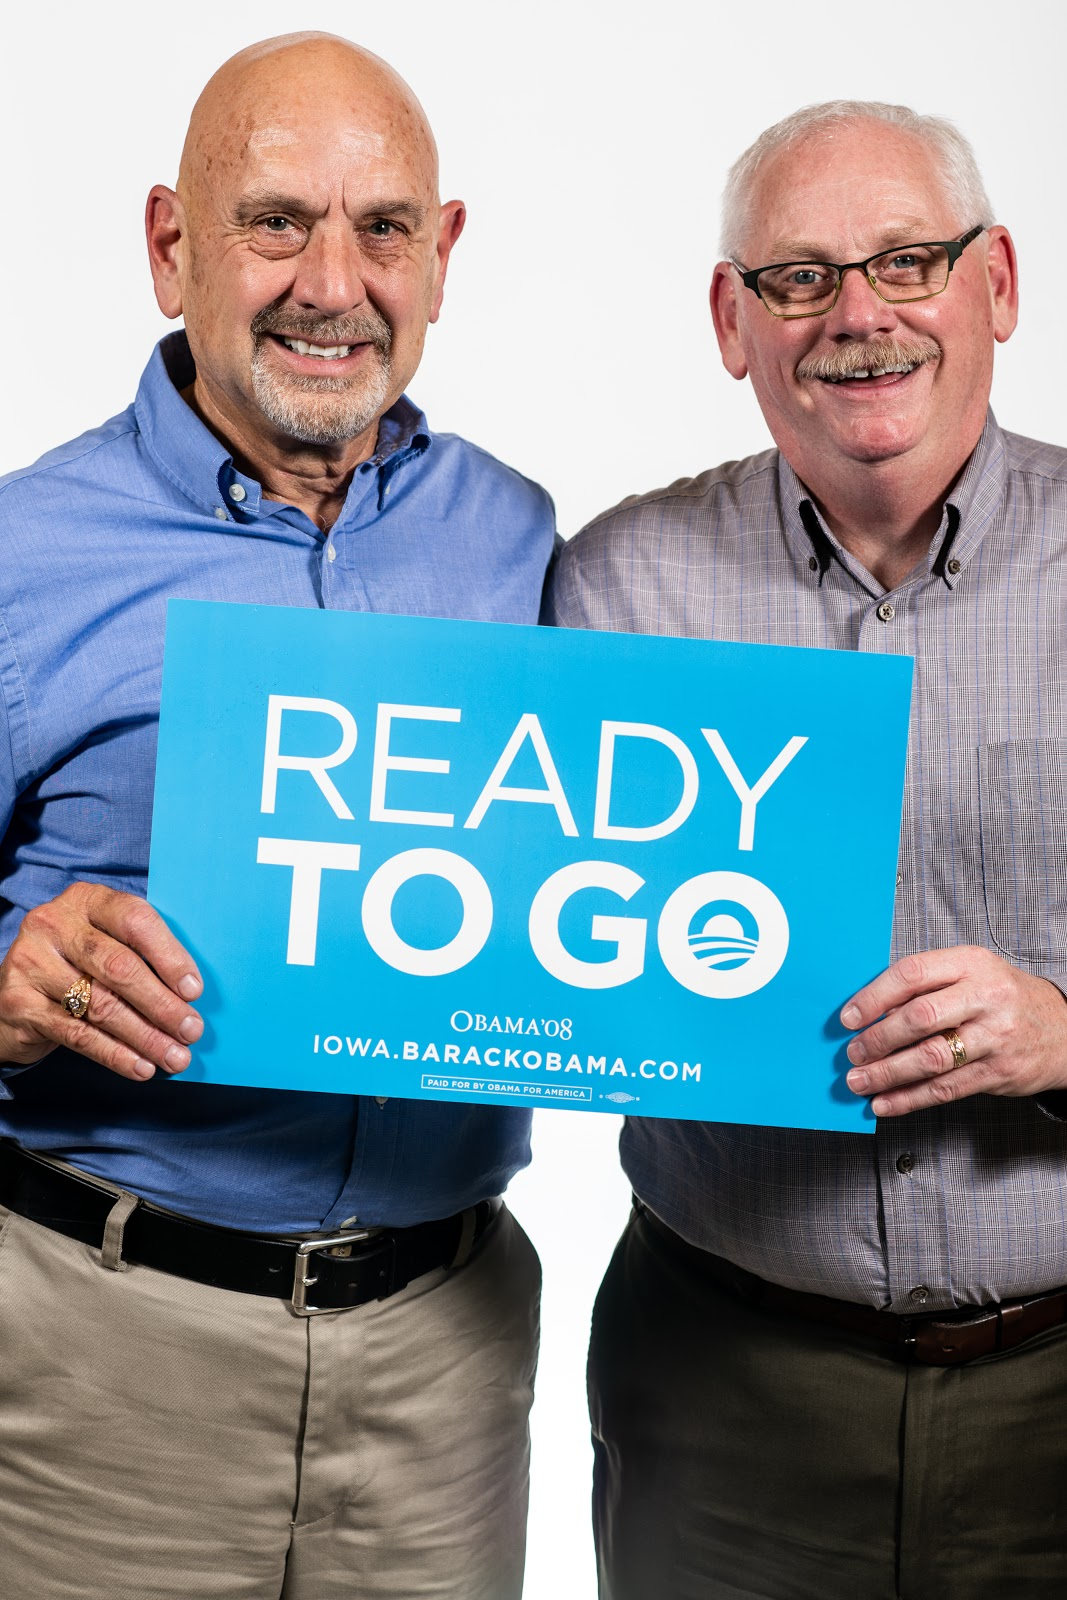 Dean Genth and Gary Swensen with a Ready to Go Sign